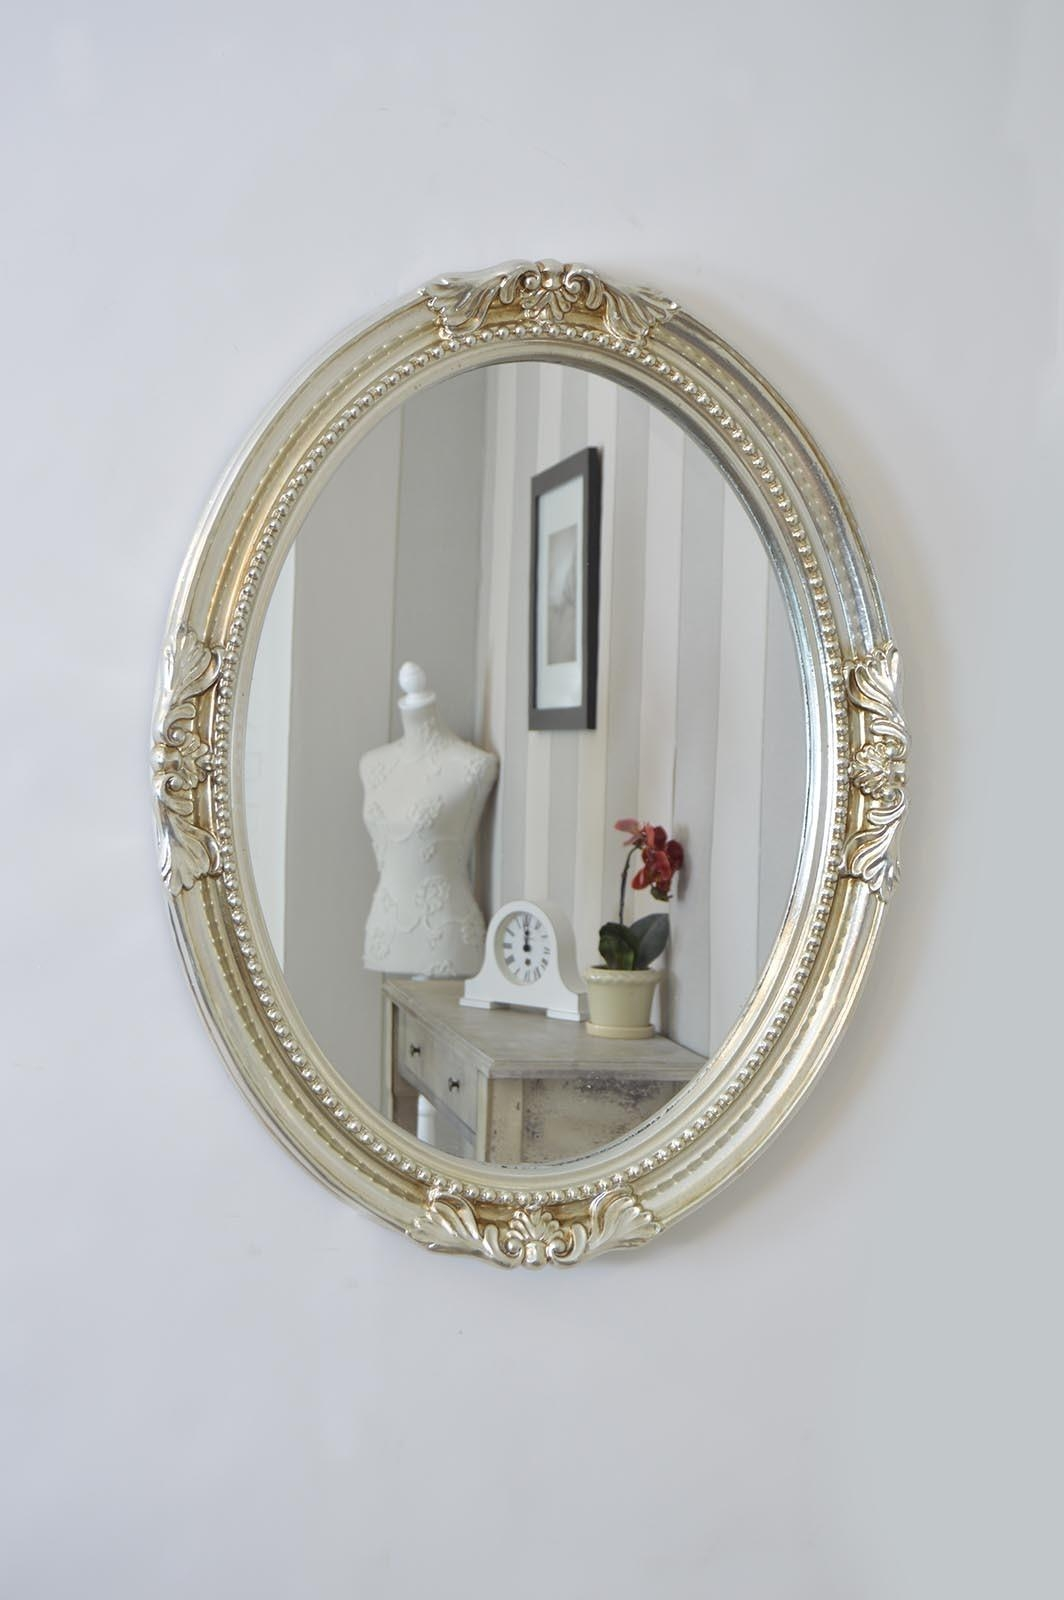 5 Tips For Best Choices Of Oval Wall Mirror – Interior Design With Silver Oval Wall Mirror (Image 1 of 20)